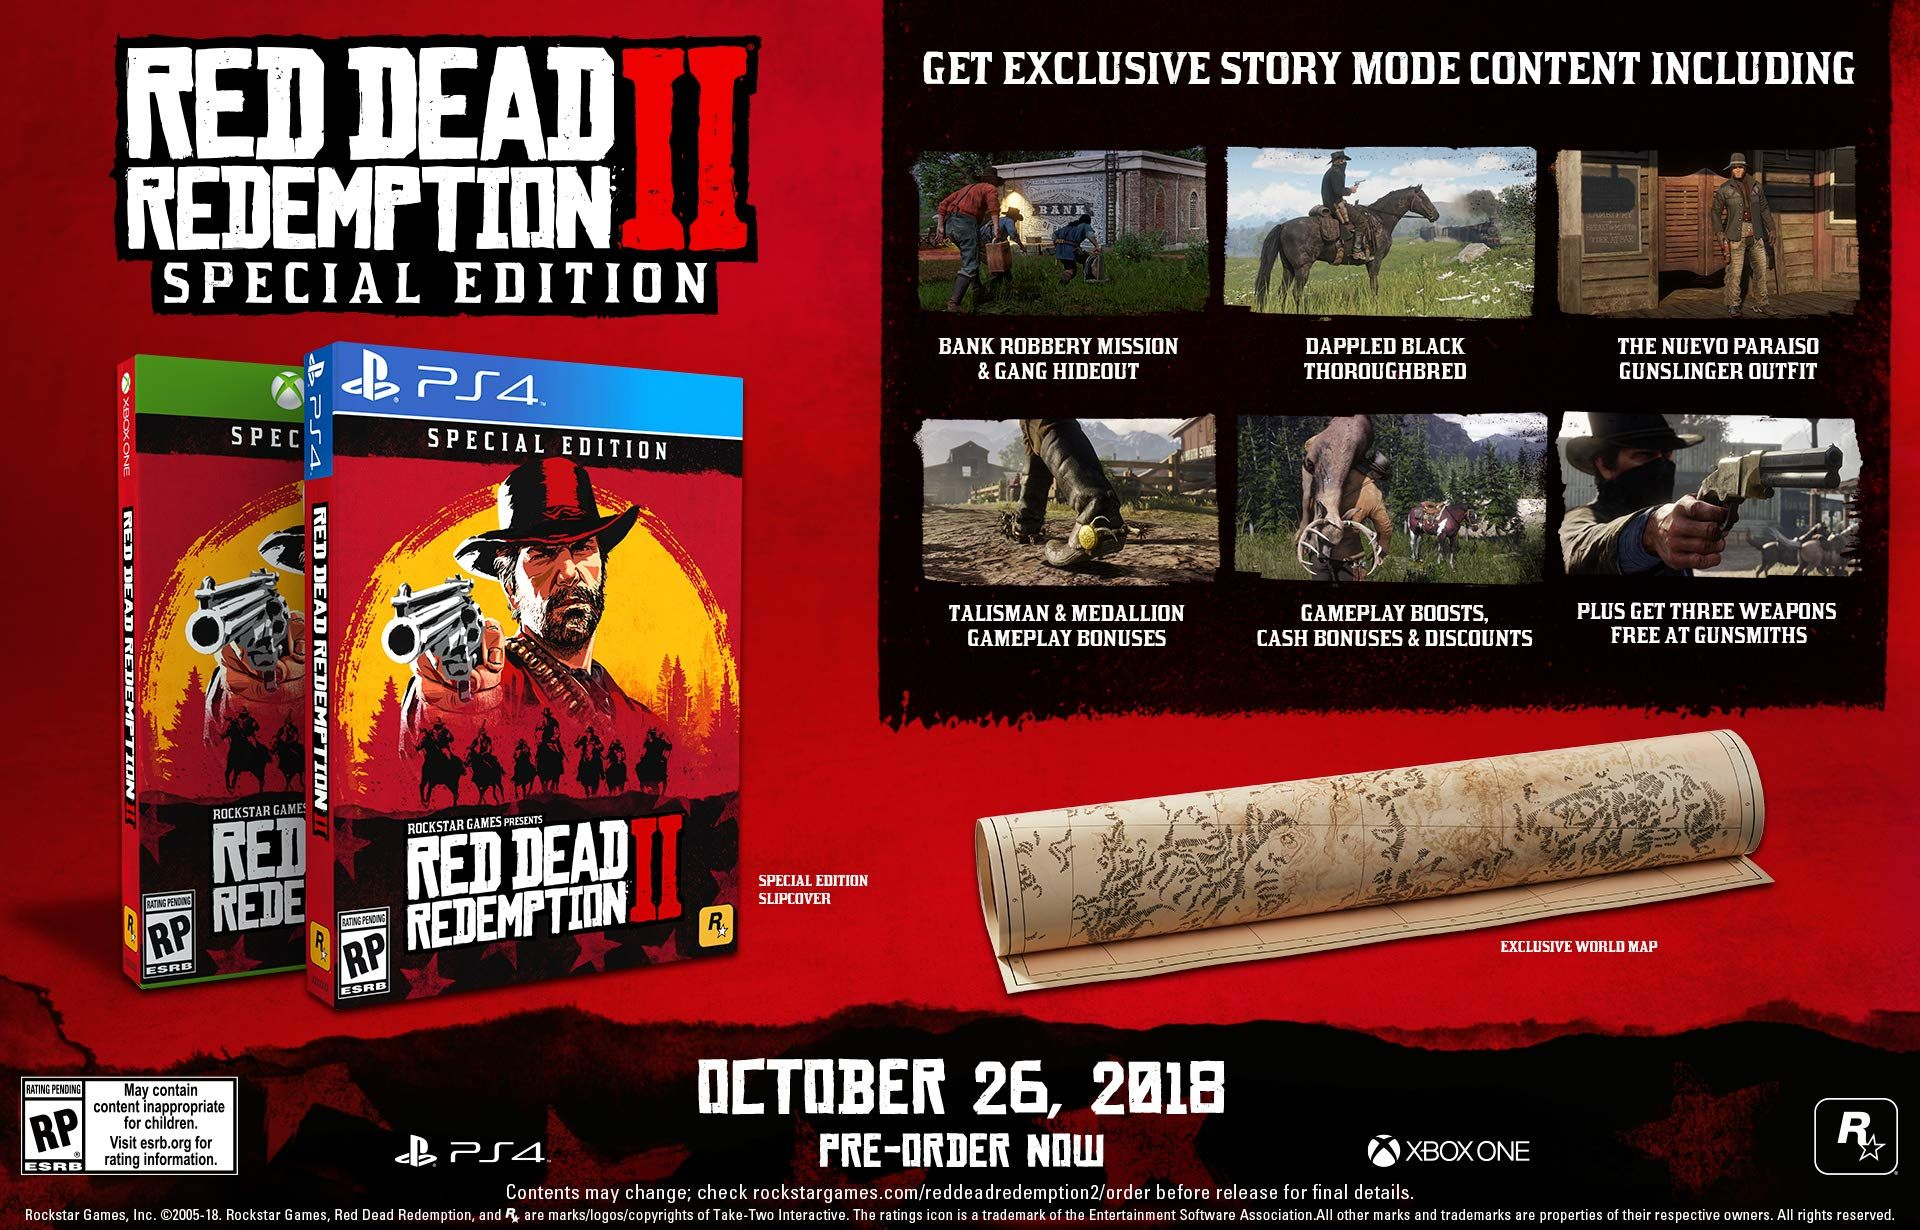 Red Dead Redemption 2 Special Edition Playstation 4 Redemption Dead Red Playstation Red Dead Redemption Red Dead Redemption Ii Redemption